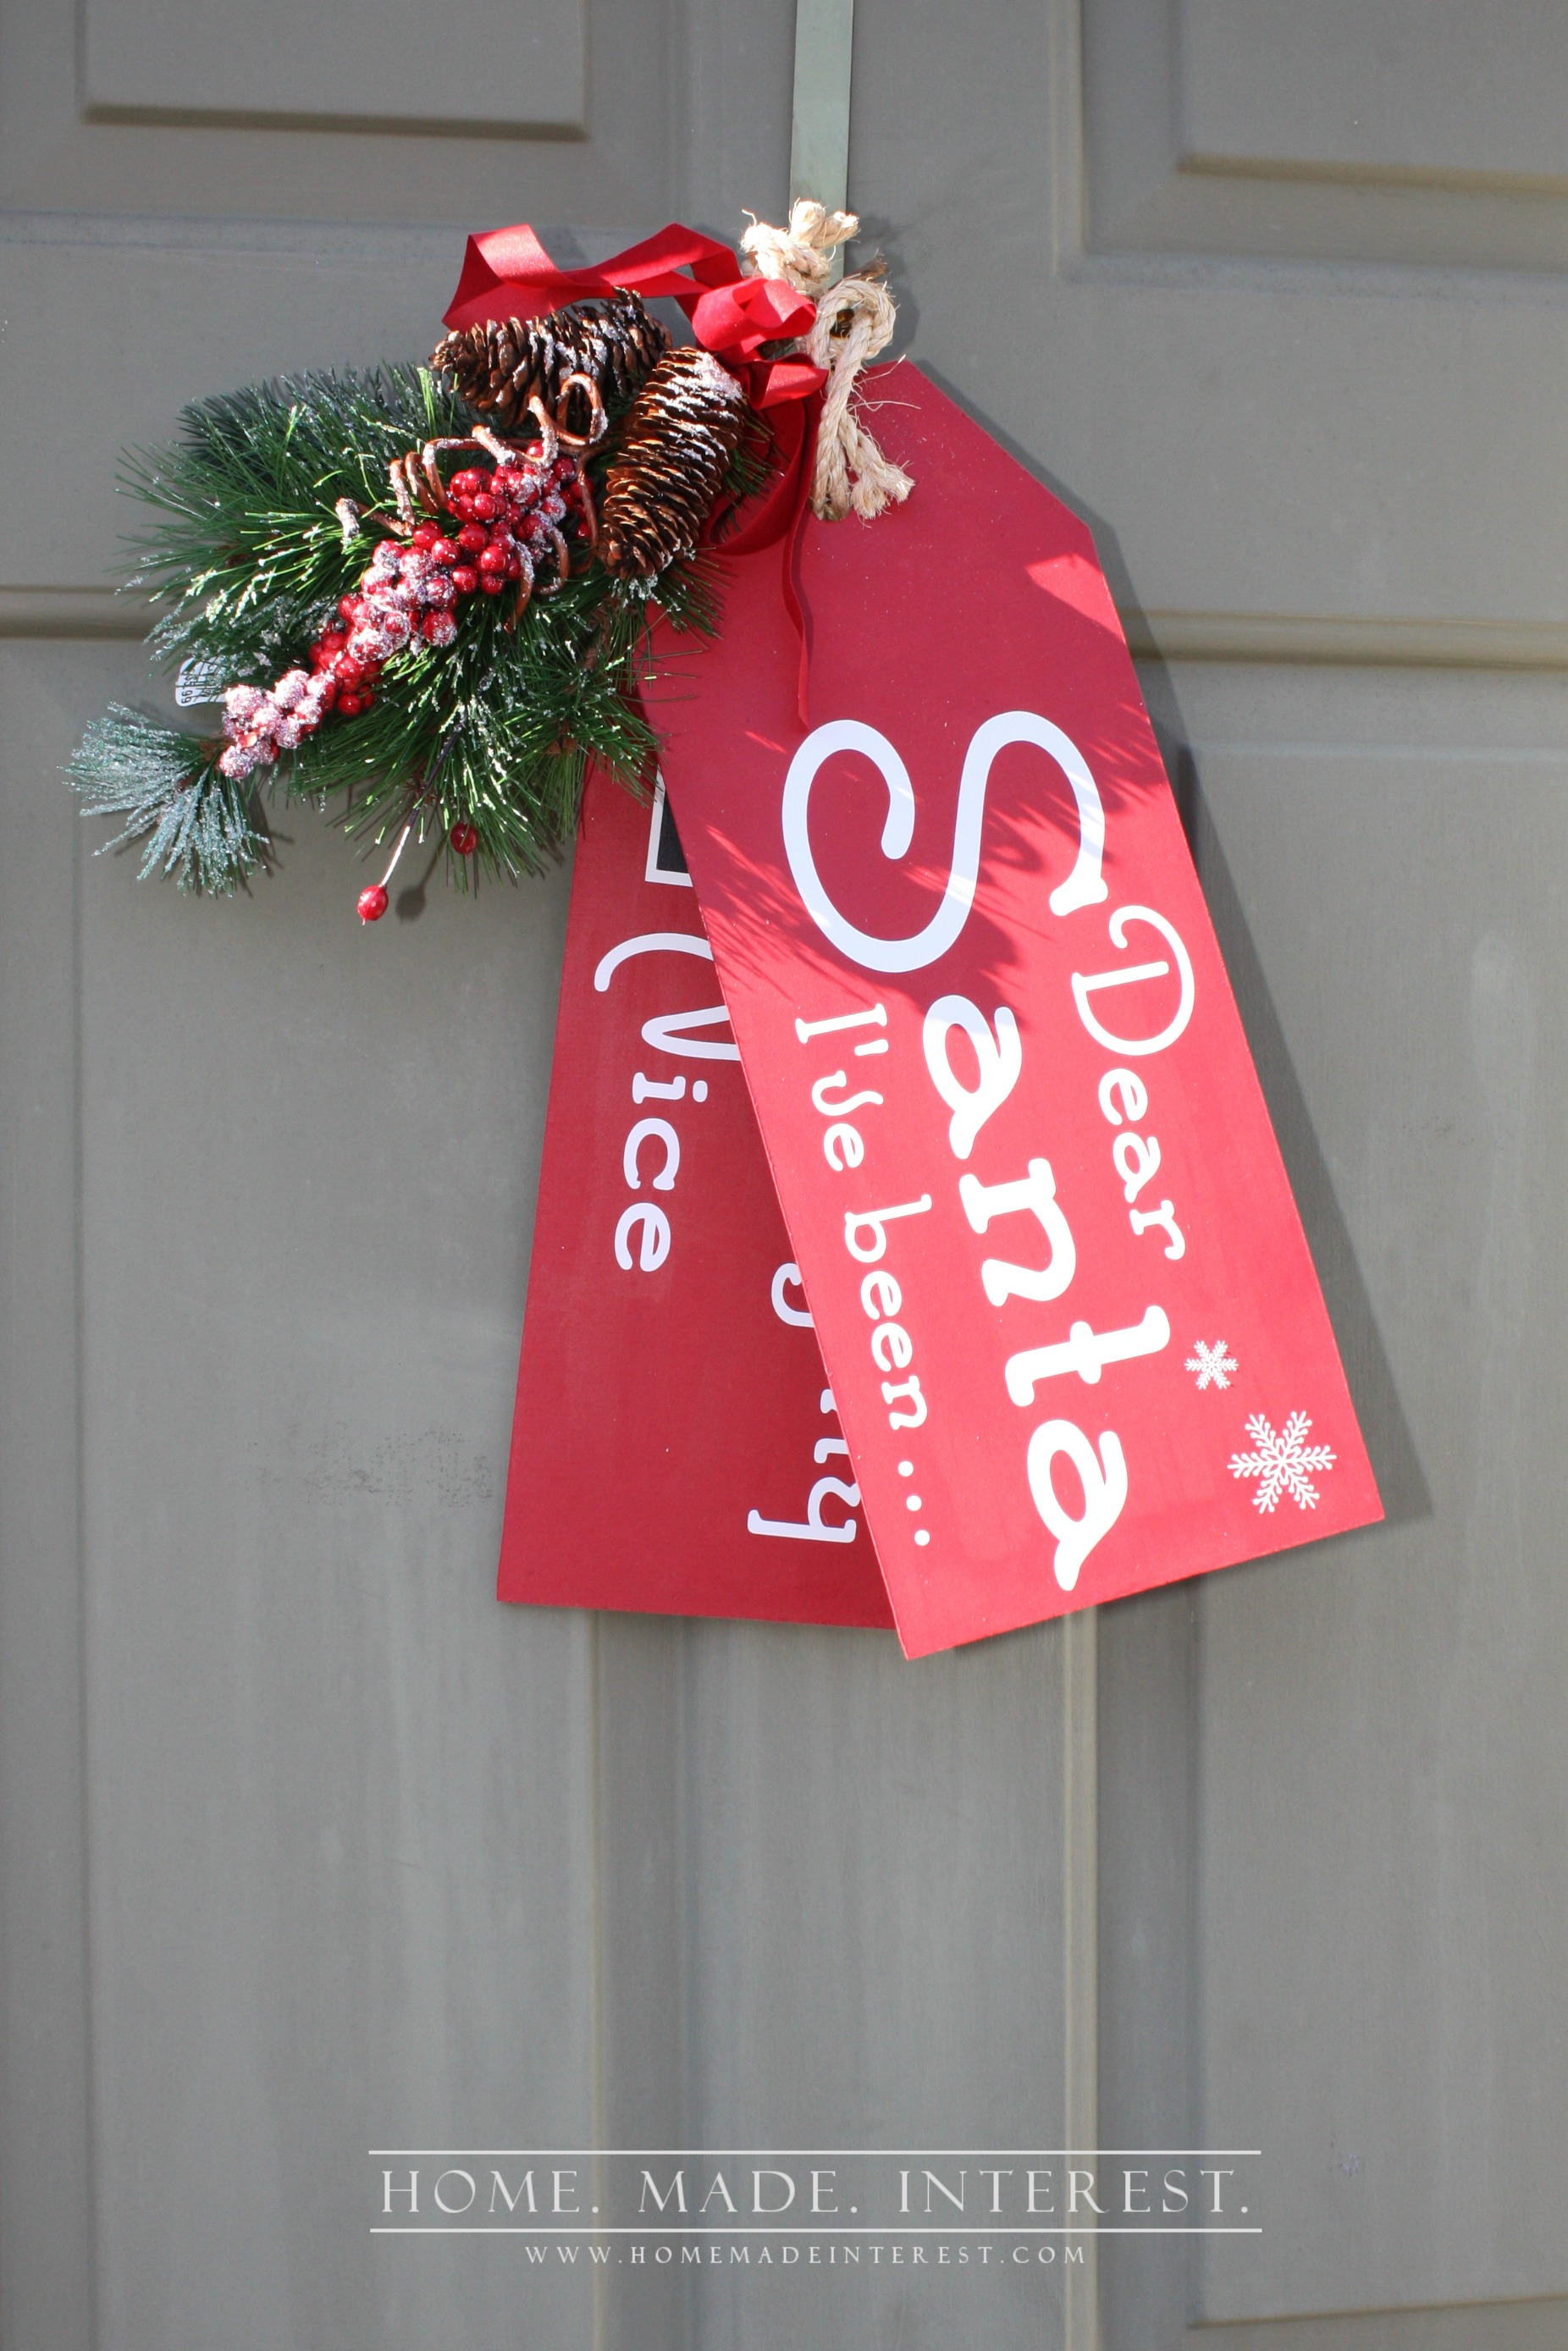 Decorating for the Holidays on a Budget